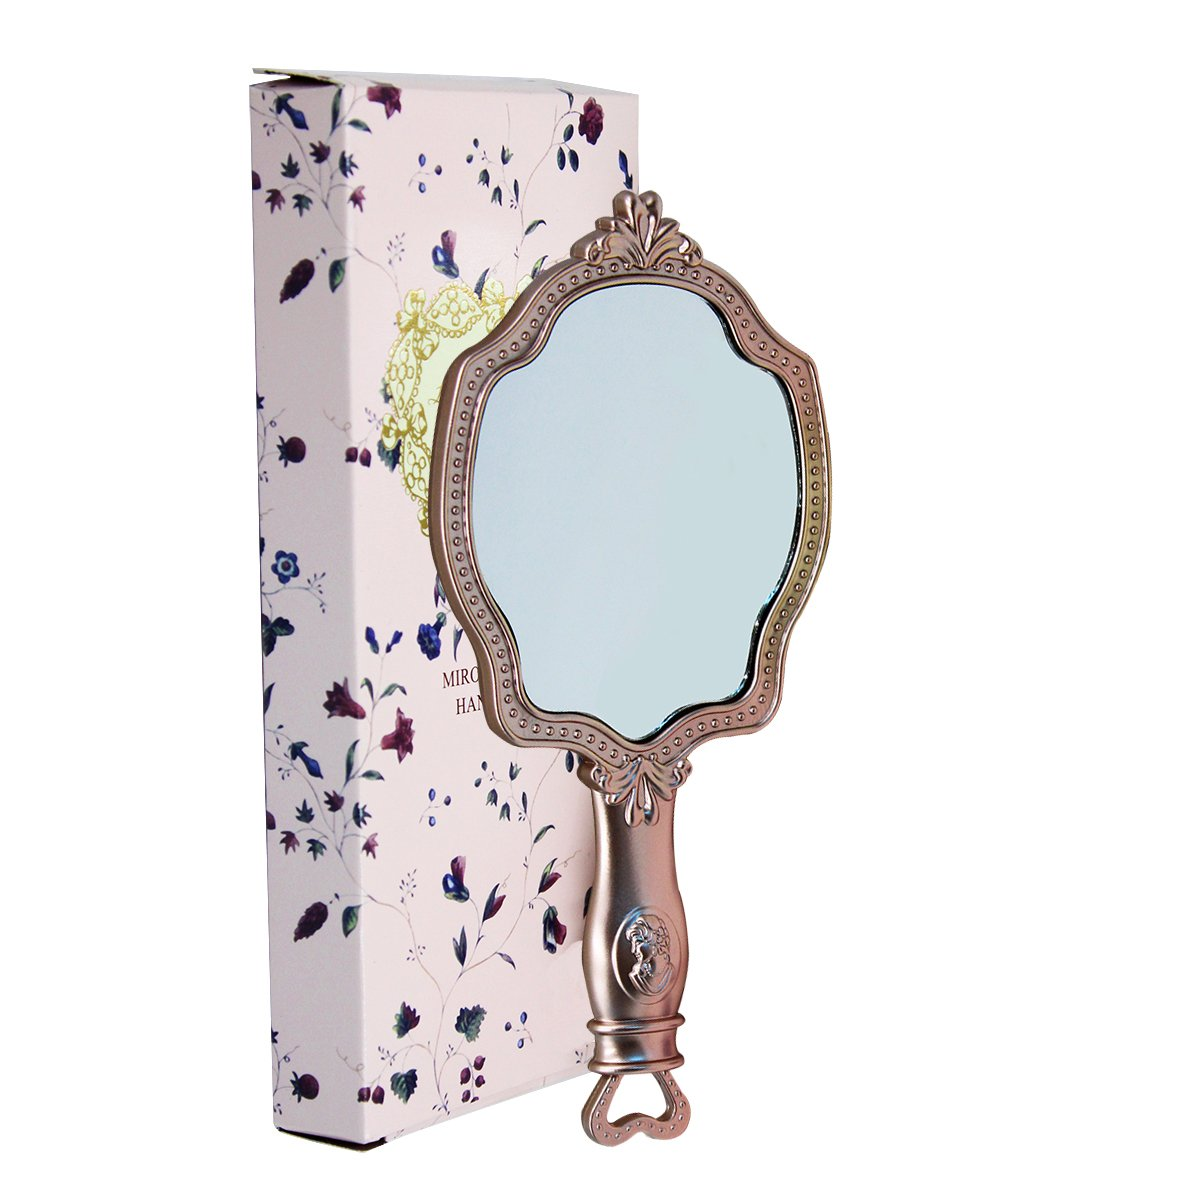 Girls Embossed Vintage Make-Up Hand Table Mirror Hand Held Makeup Mirror Princess Style Ideal Gift 0